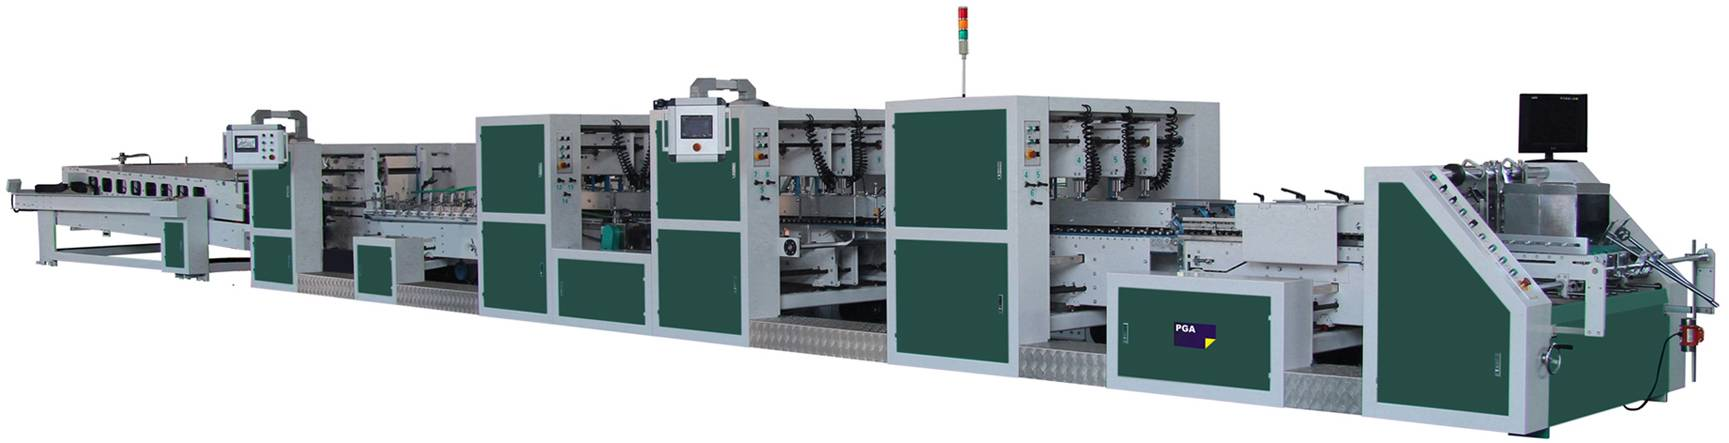 Automatic Folder Gluer Machine (BGM-1250A)